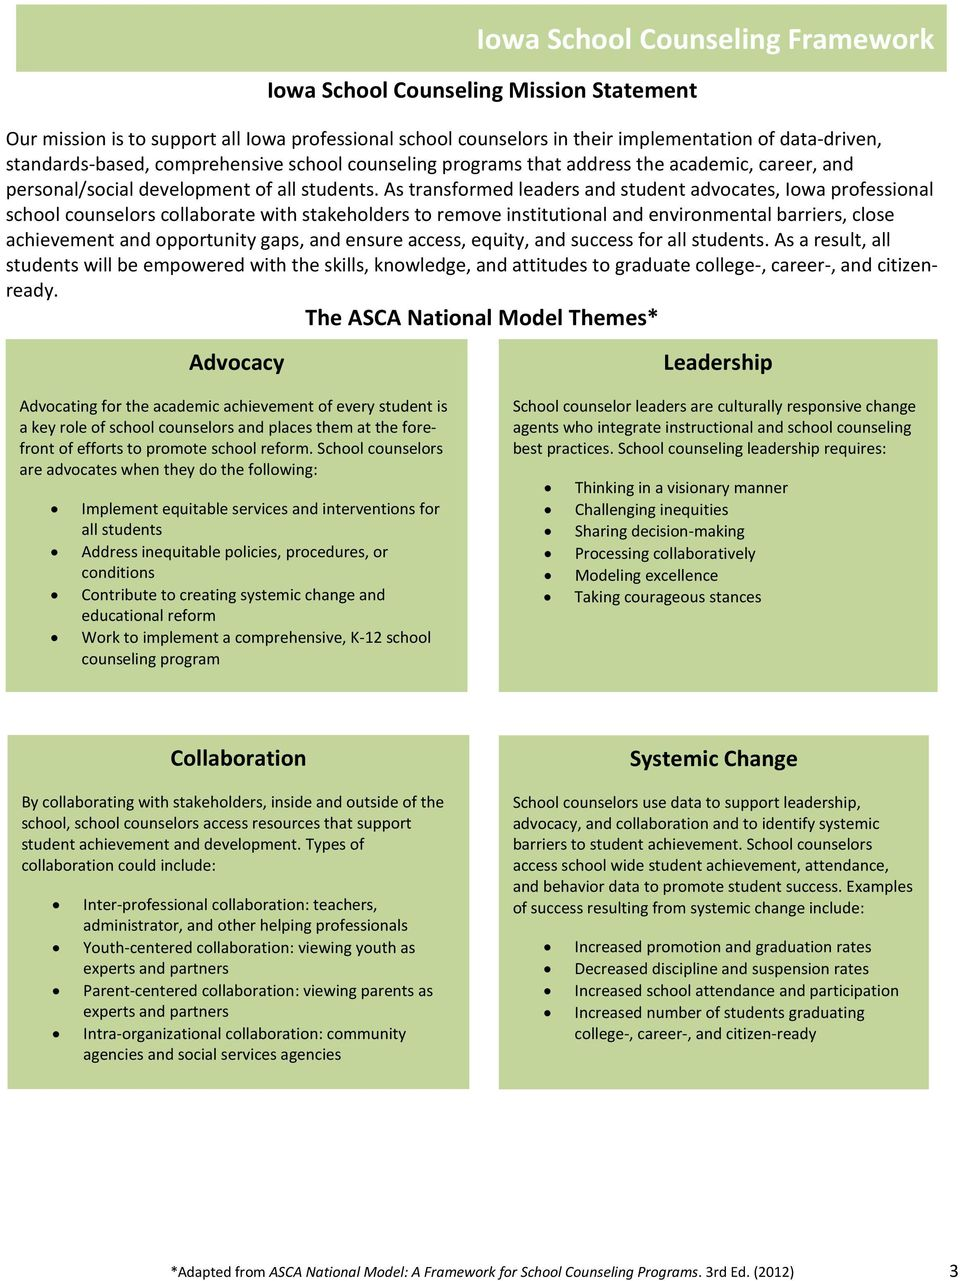 As transformed leaders and student advocates, Iowa professional school counselors collaborate with stakeholders to remove institutional and environmental barriers, close achievement and opportunity